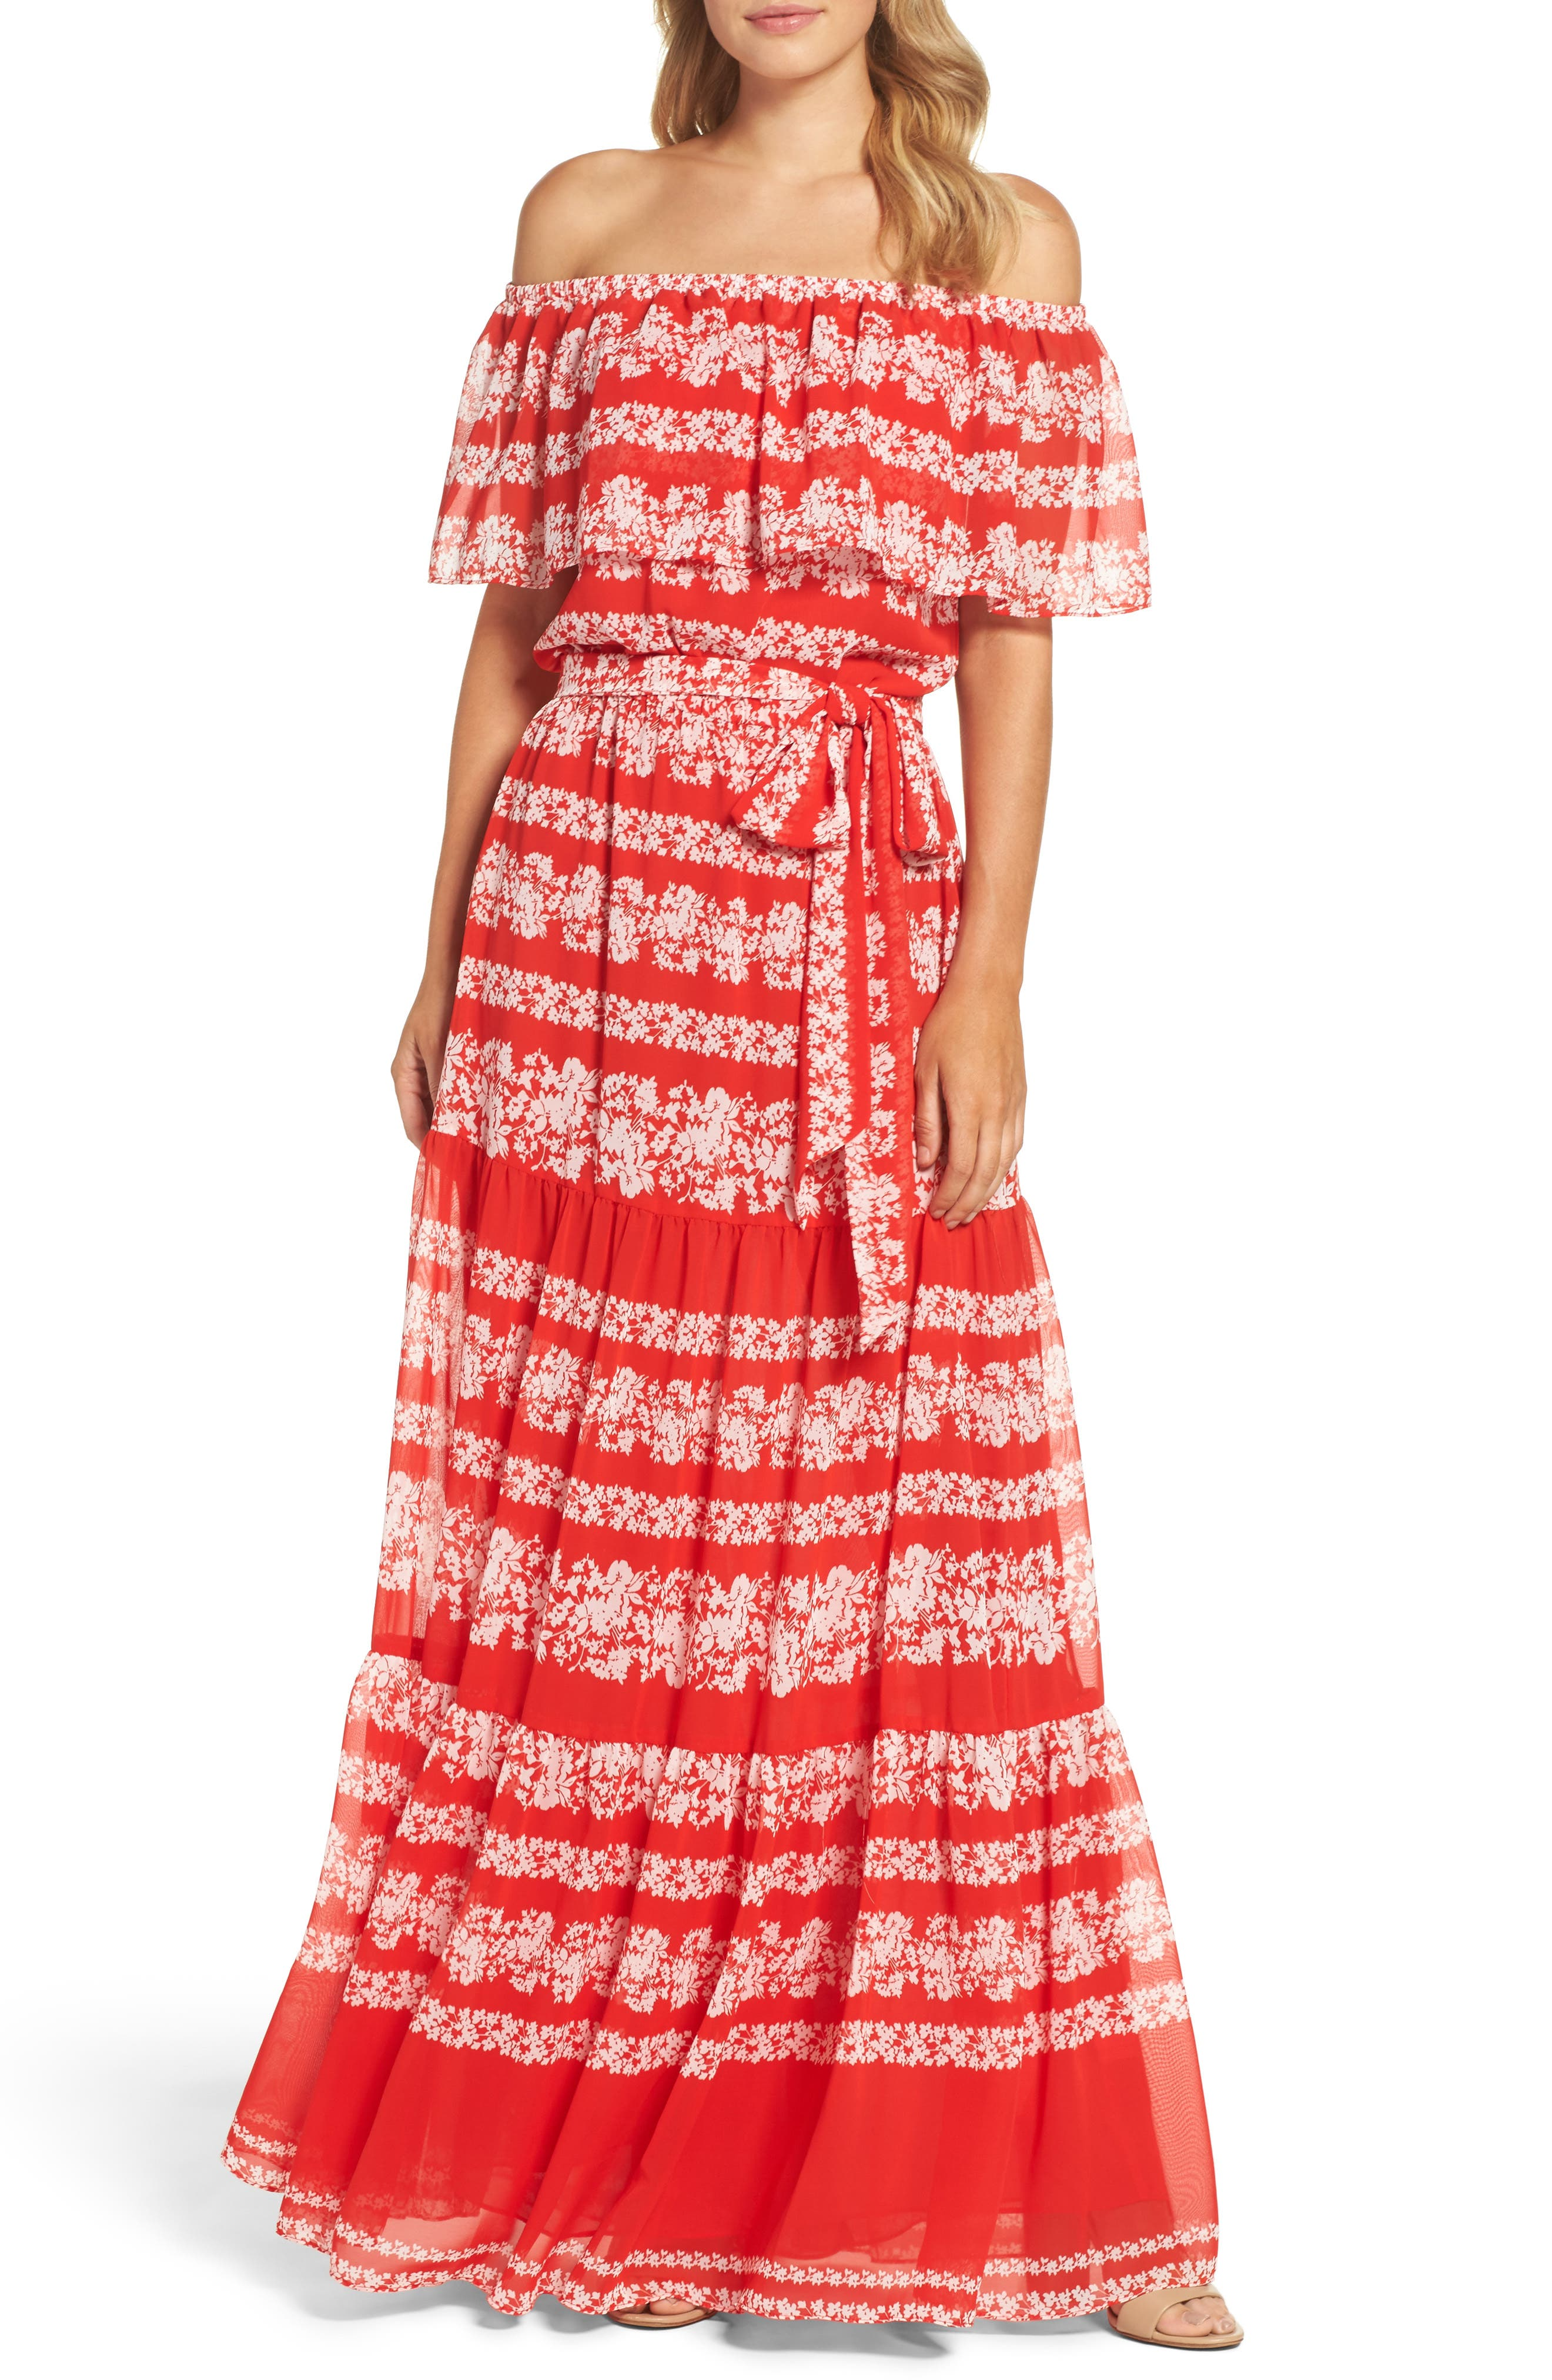 Off the Shoulder Maxi Dress,                             Main thumbnail 1, color,                             Red/ Ivory